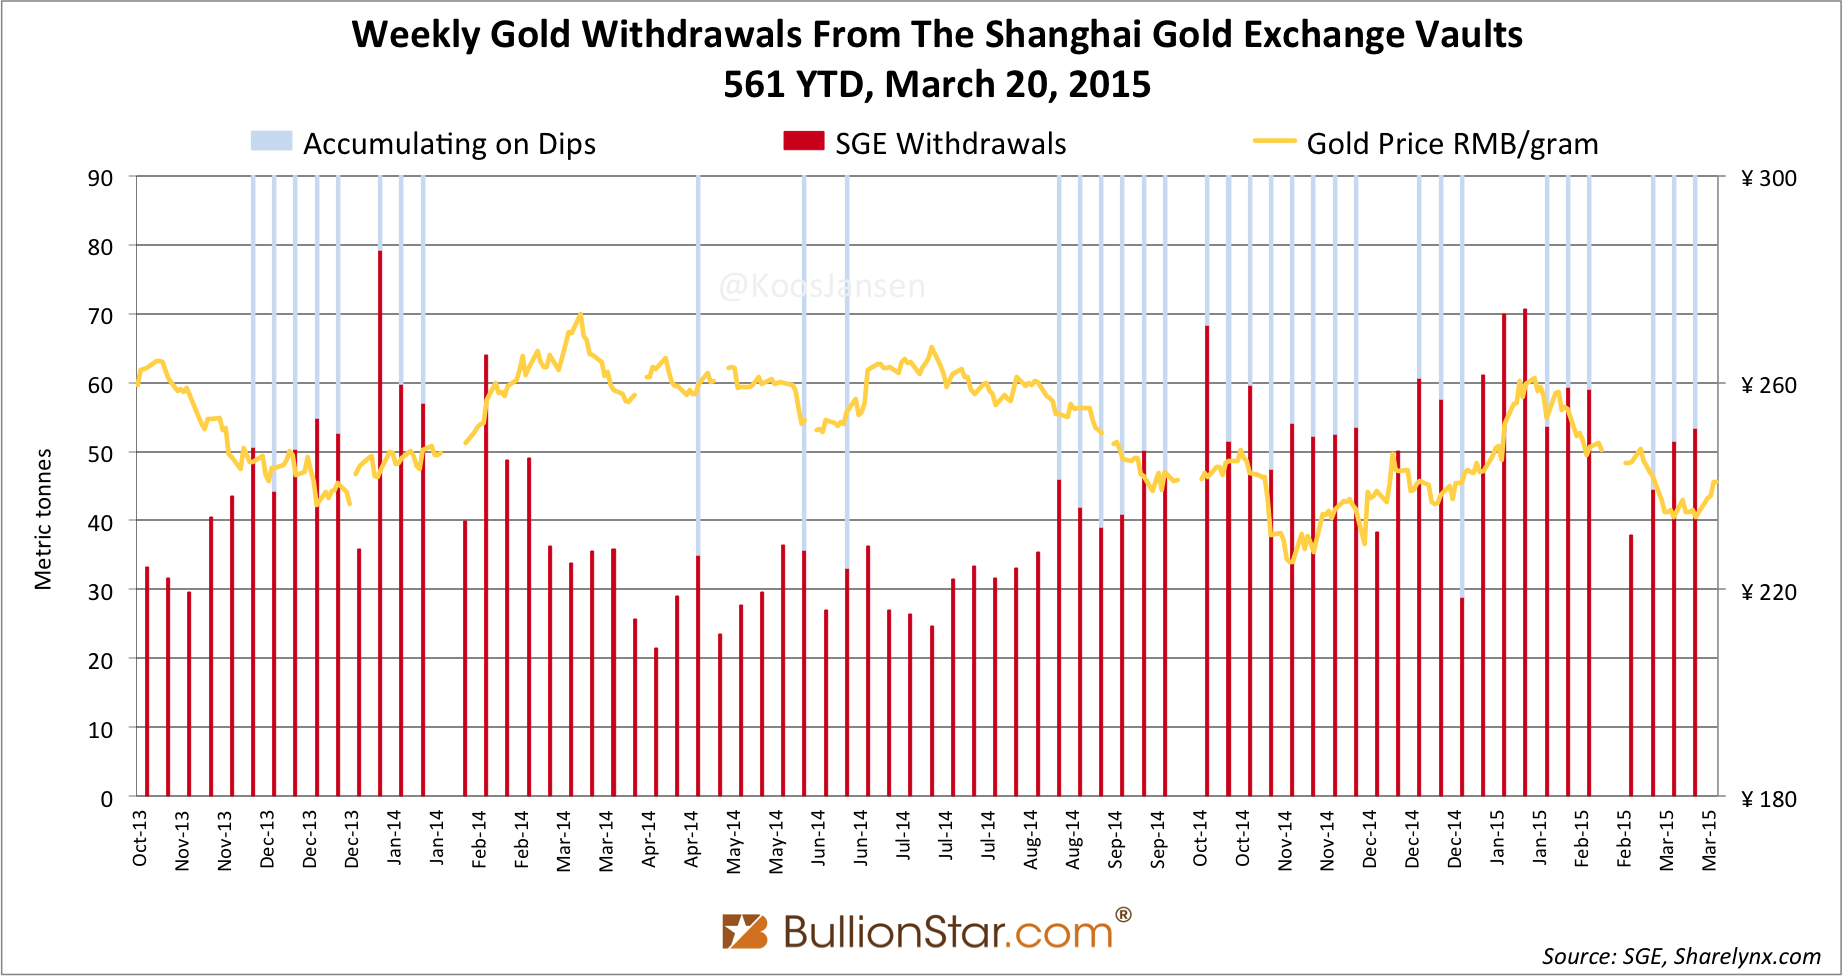 Shanghai Gold Exchange SGE withdrawals delivery only 2014 - 2015 week 11